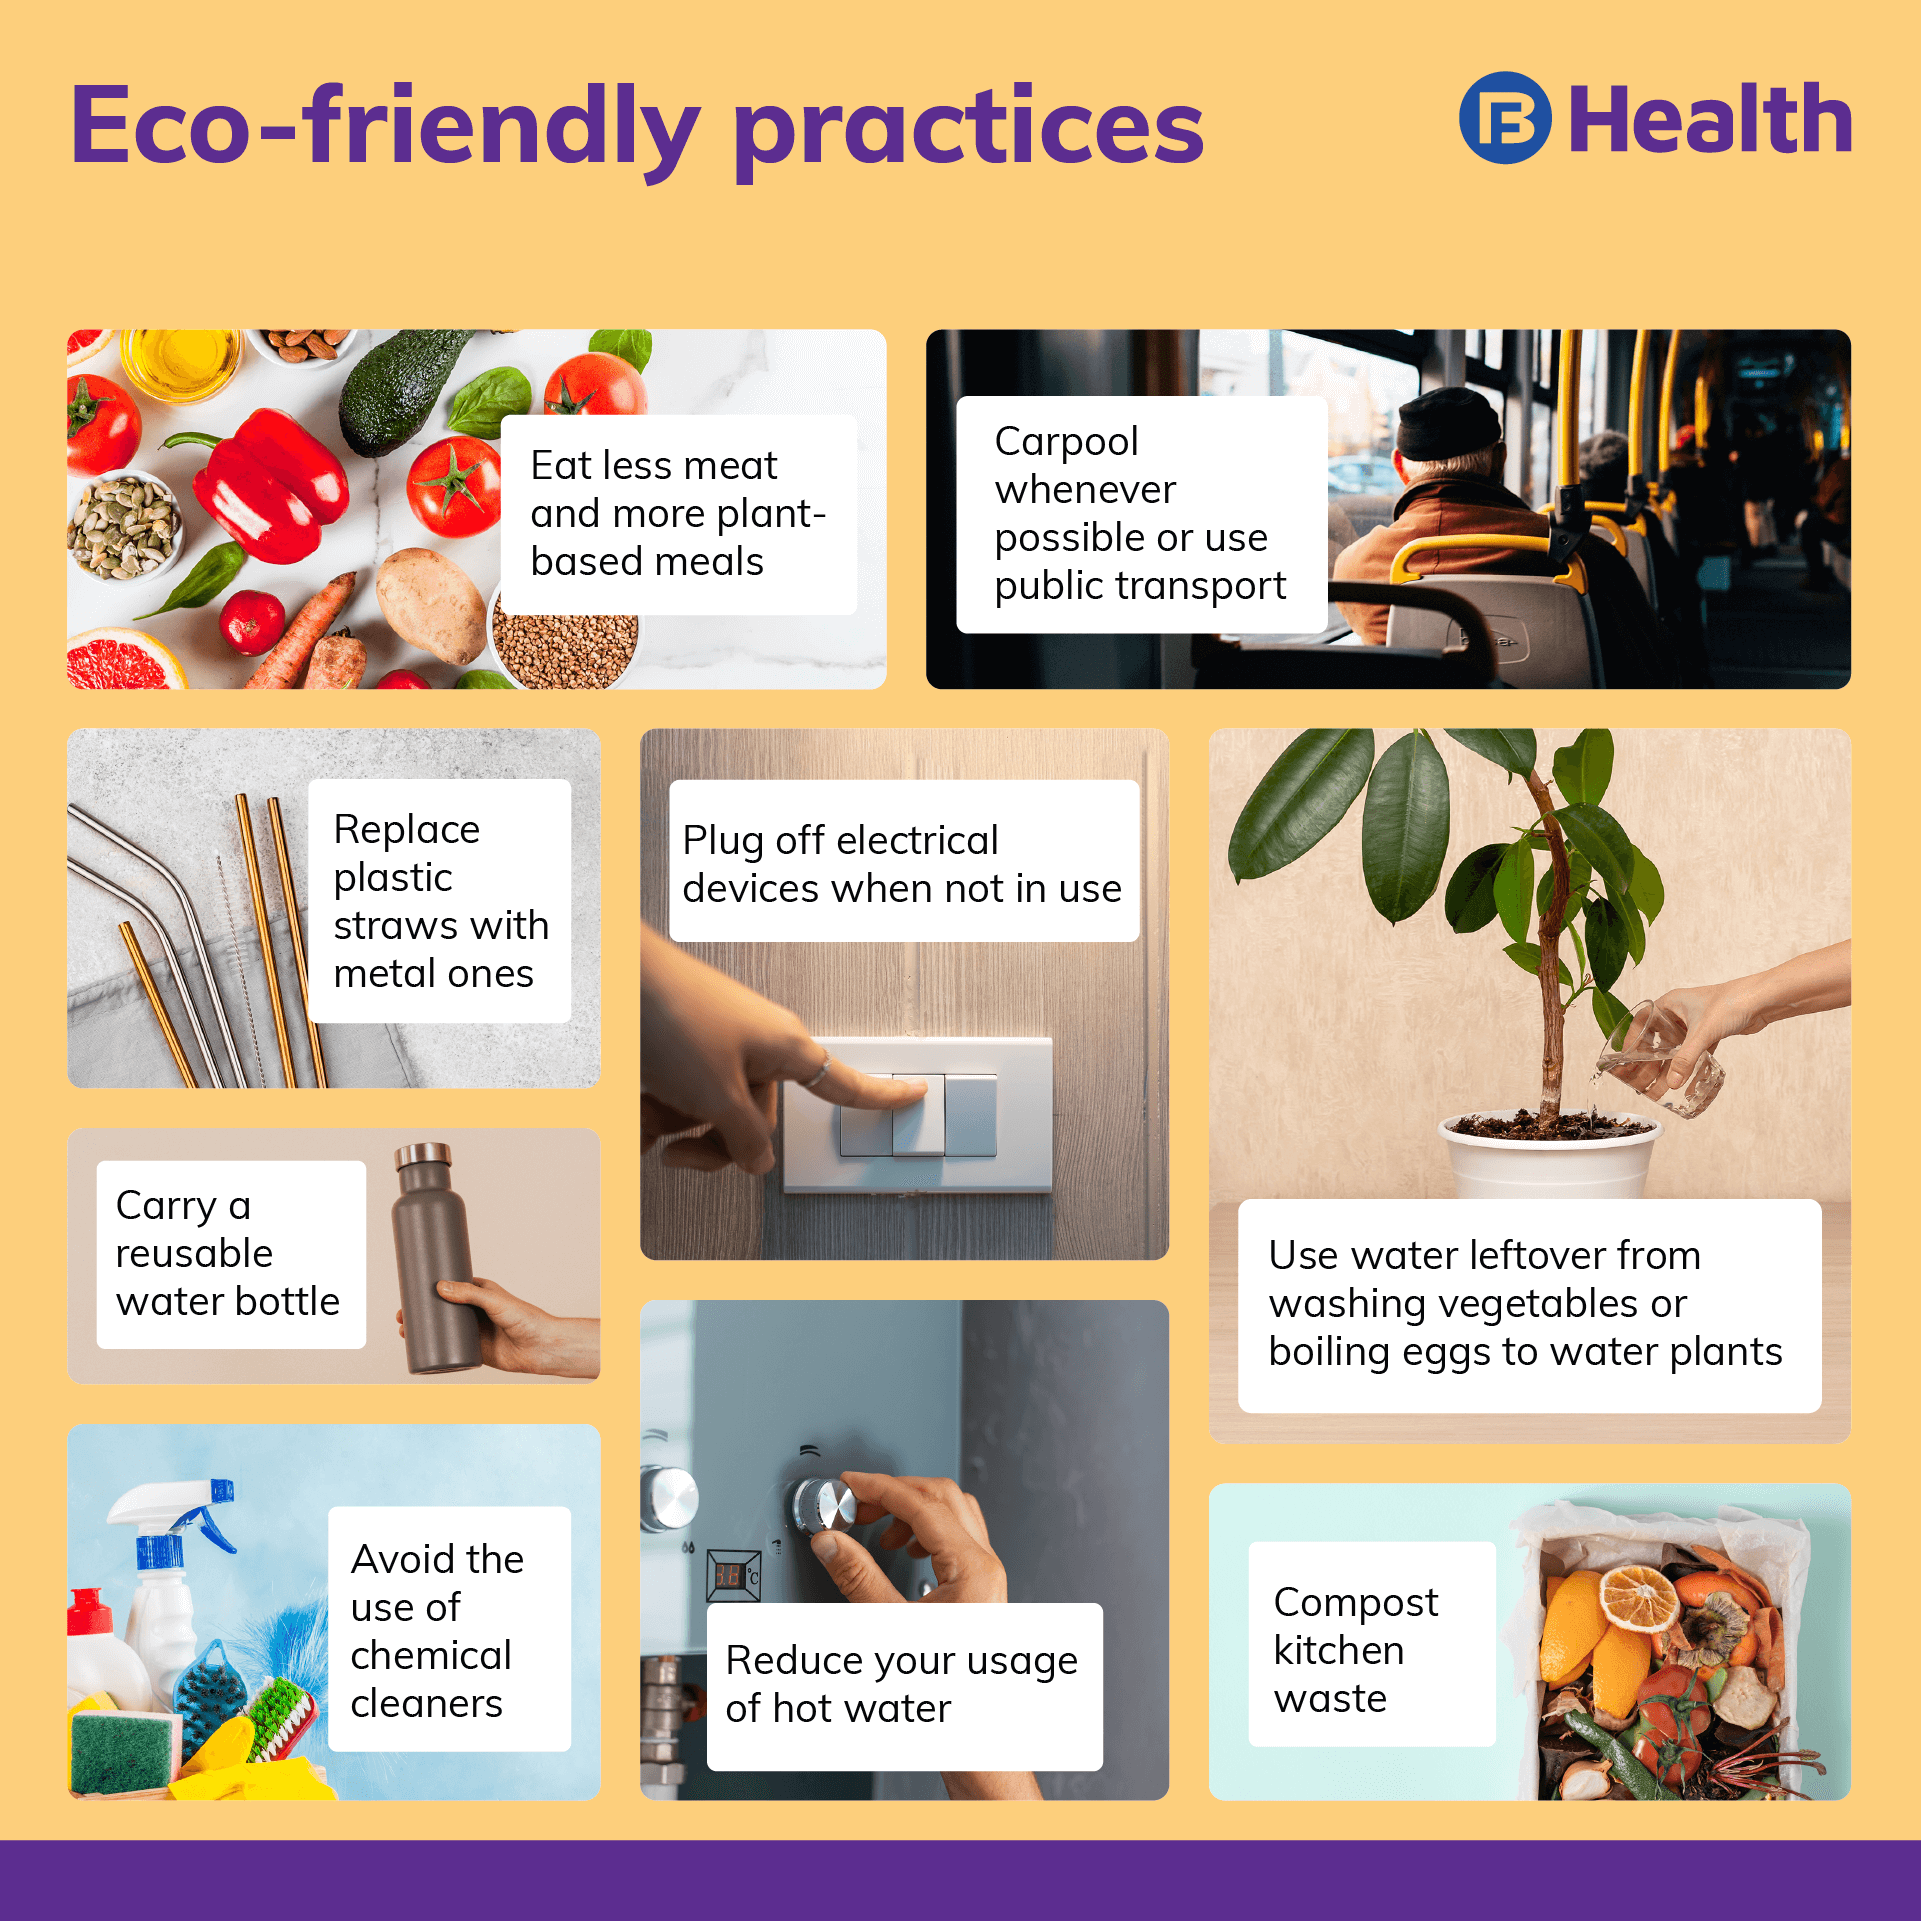 Healthy environment practices